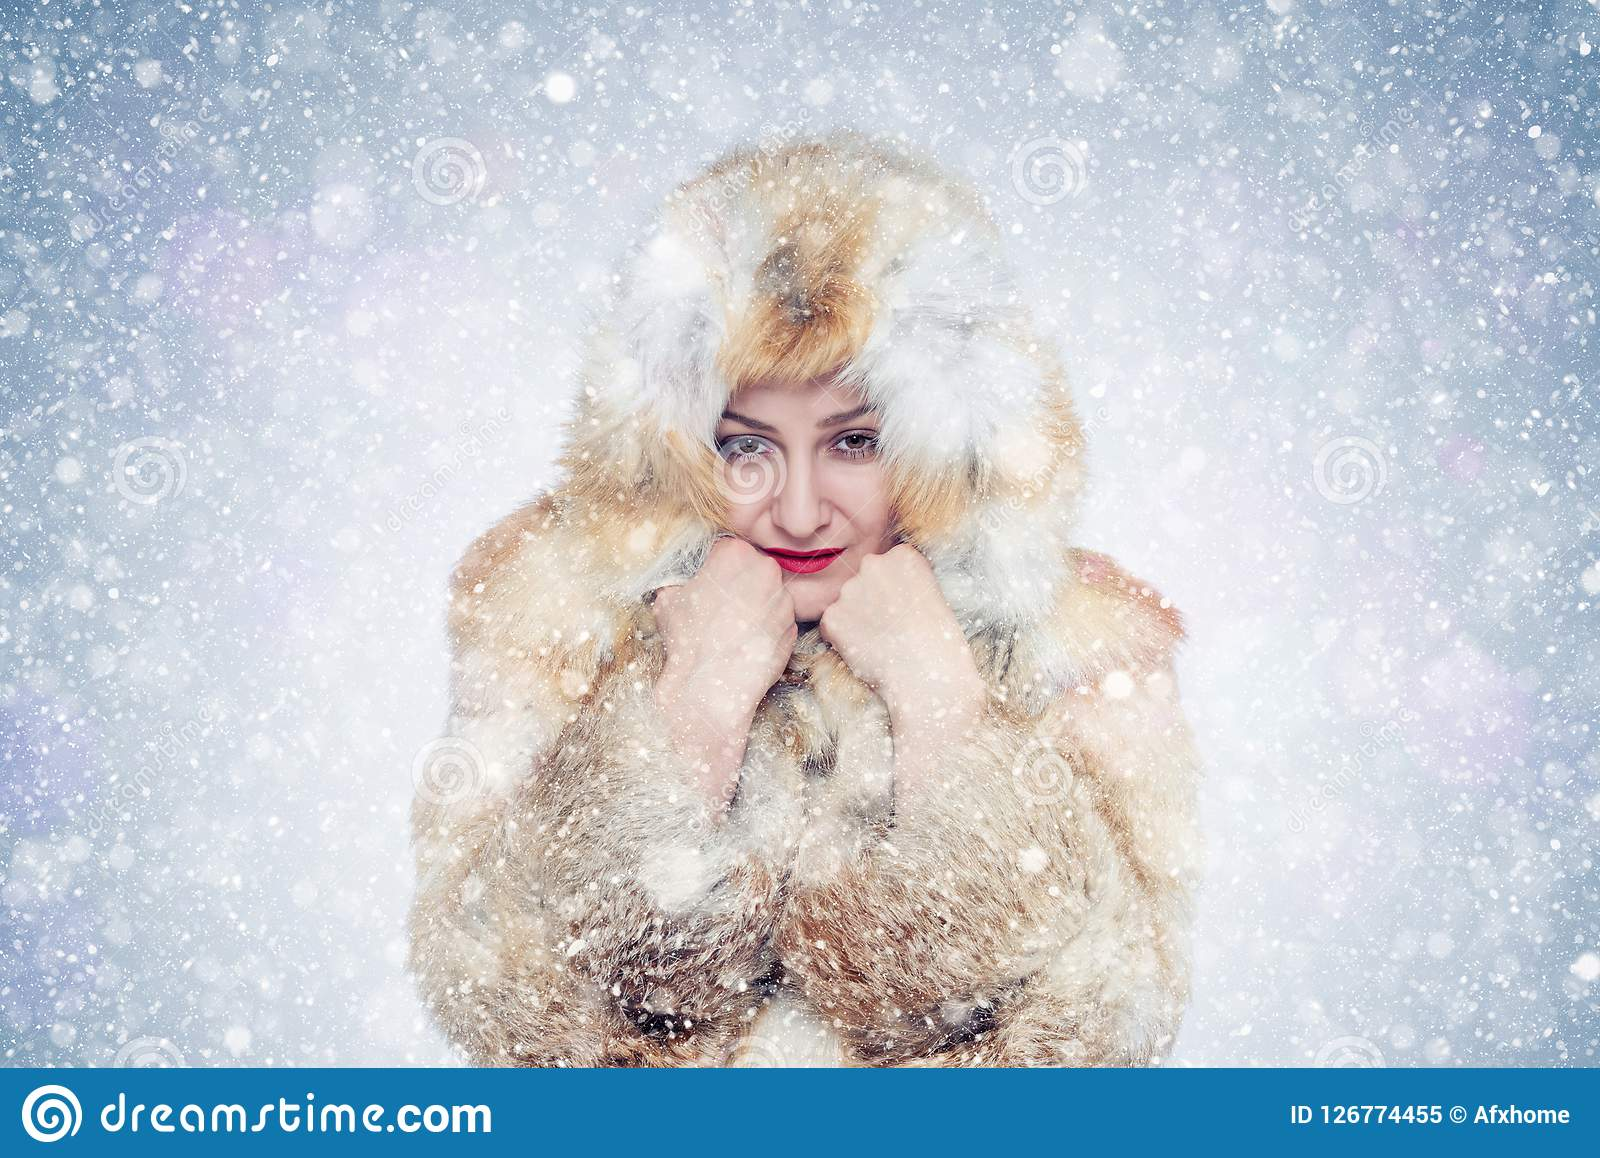 Frozen young woman in a fox fur coat, cold, snow, frost, blizzard